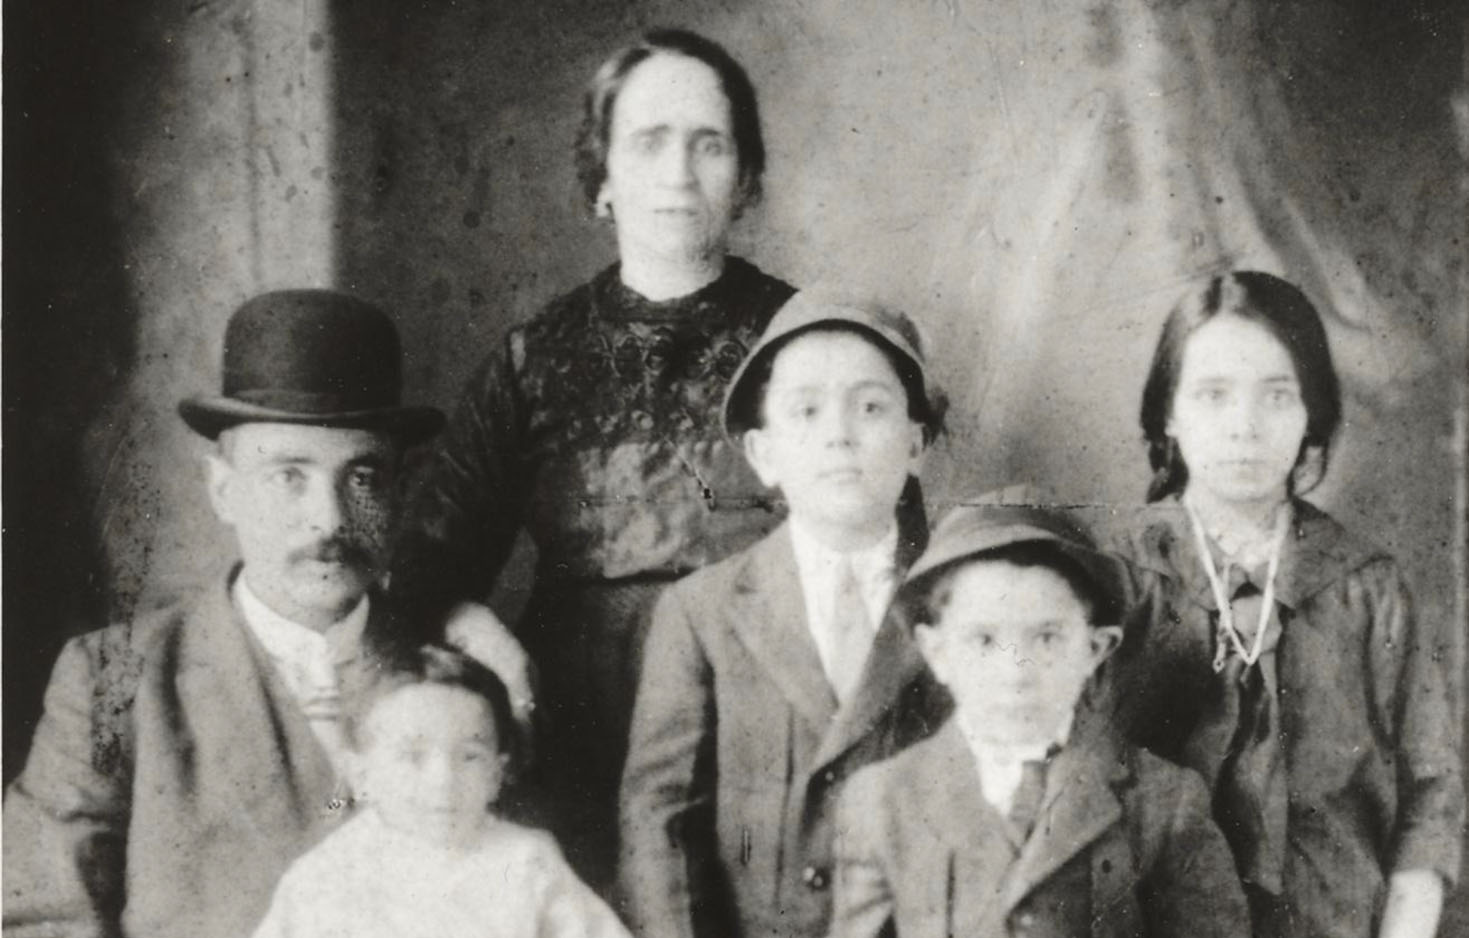 A formal black and white portrait of 6 members of the Confino family, 2 adults, a baby, and 3 other children